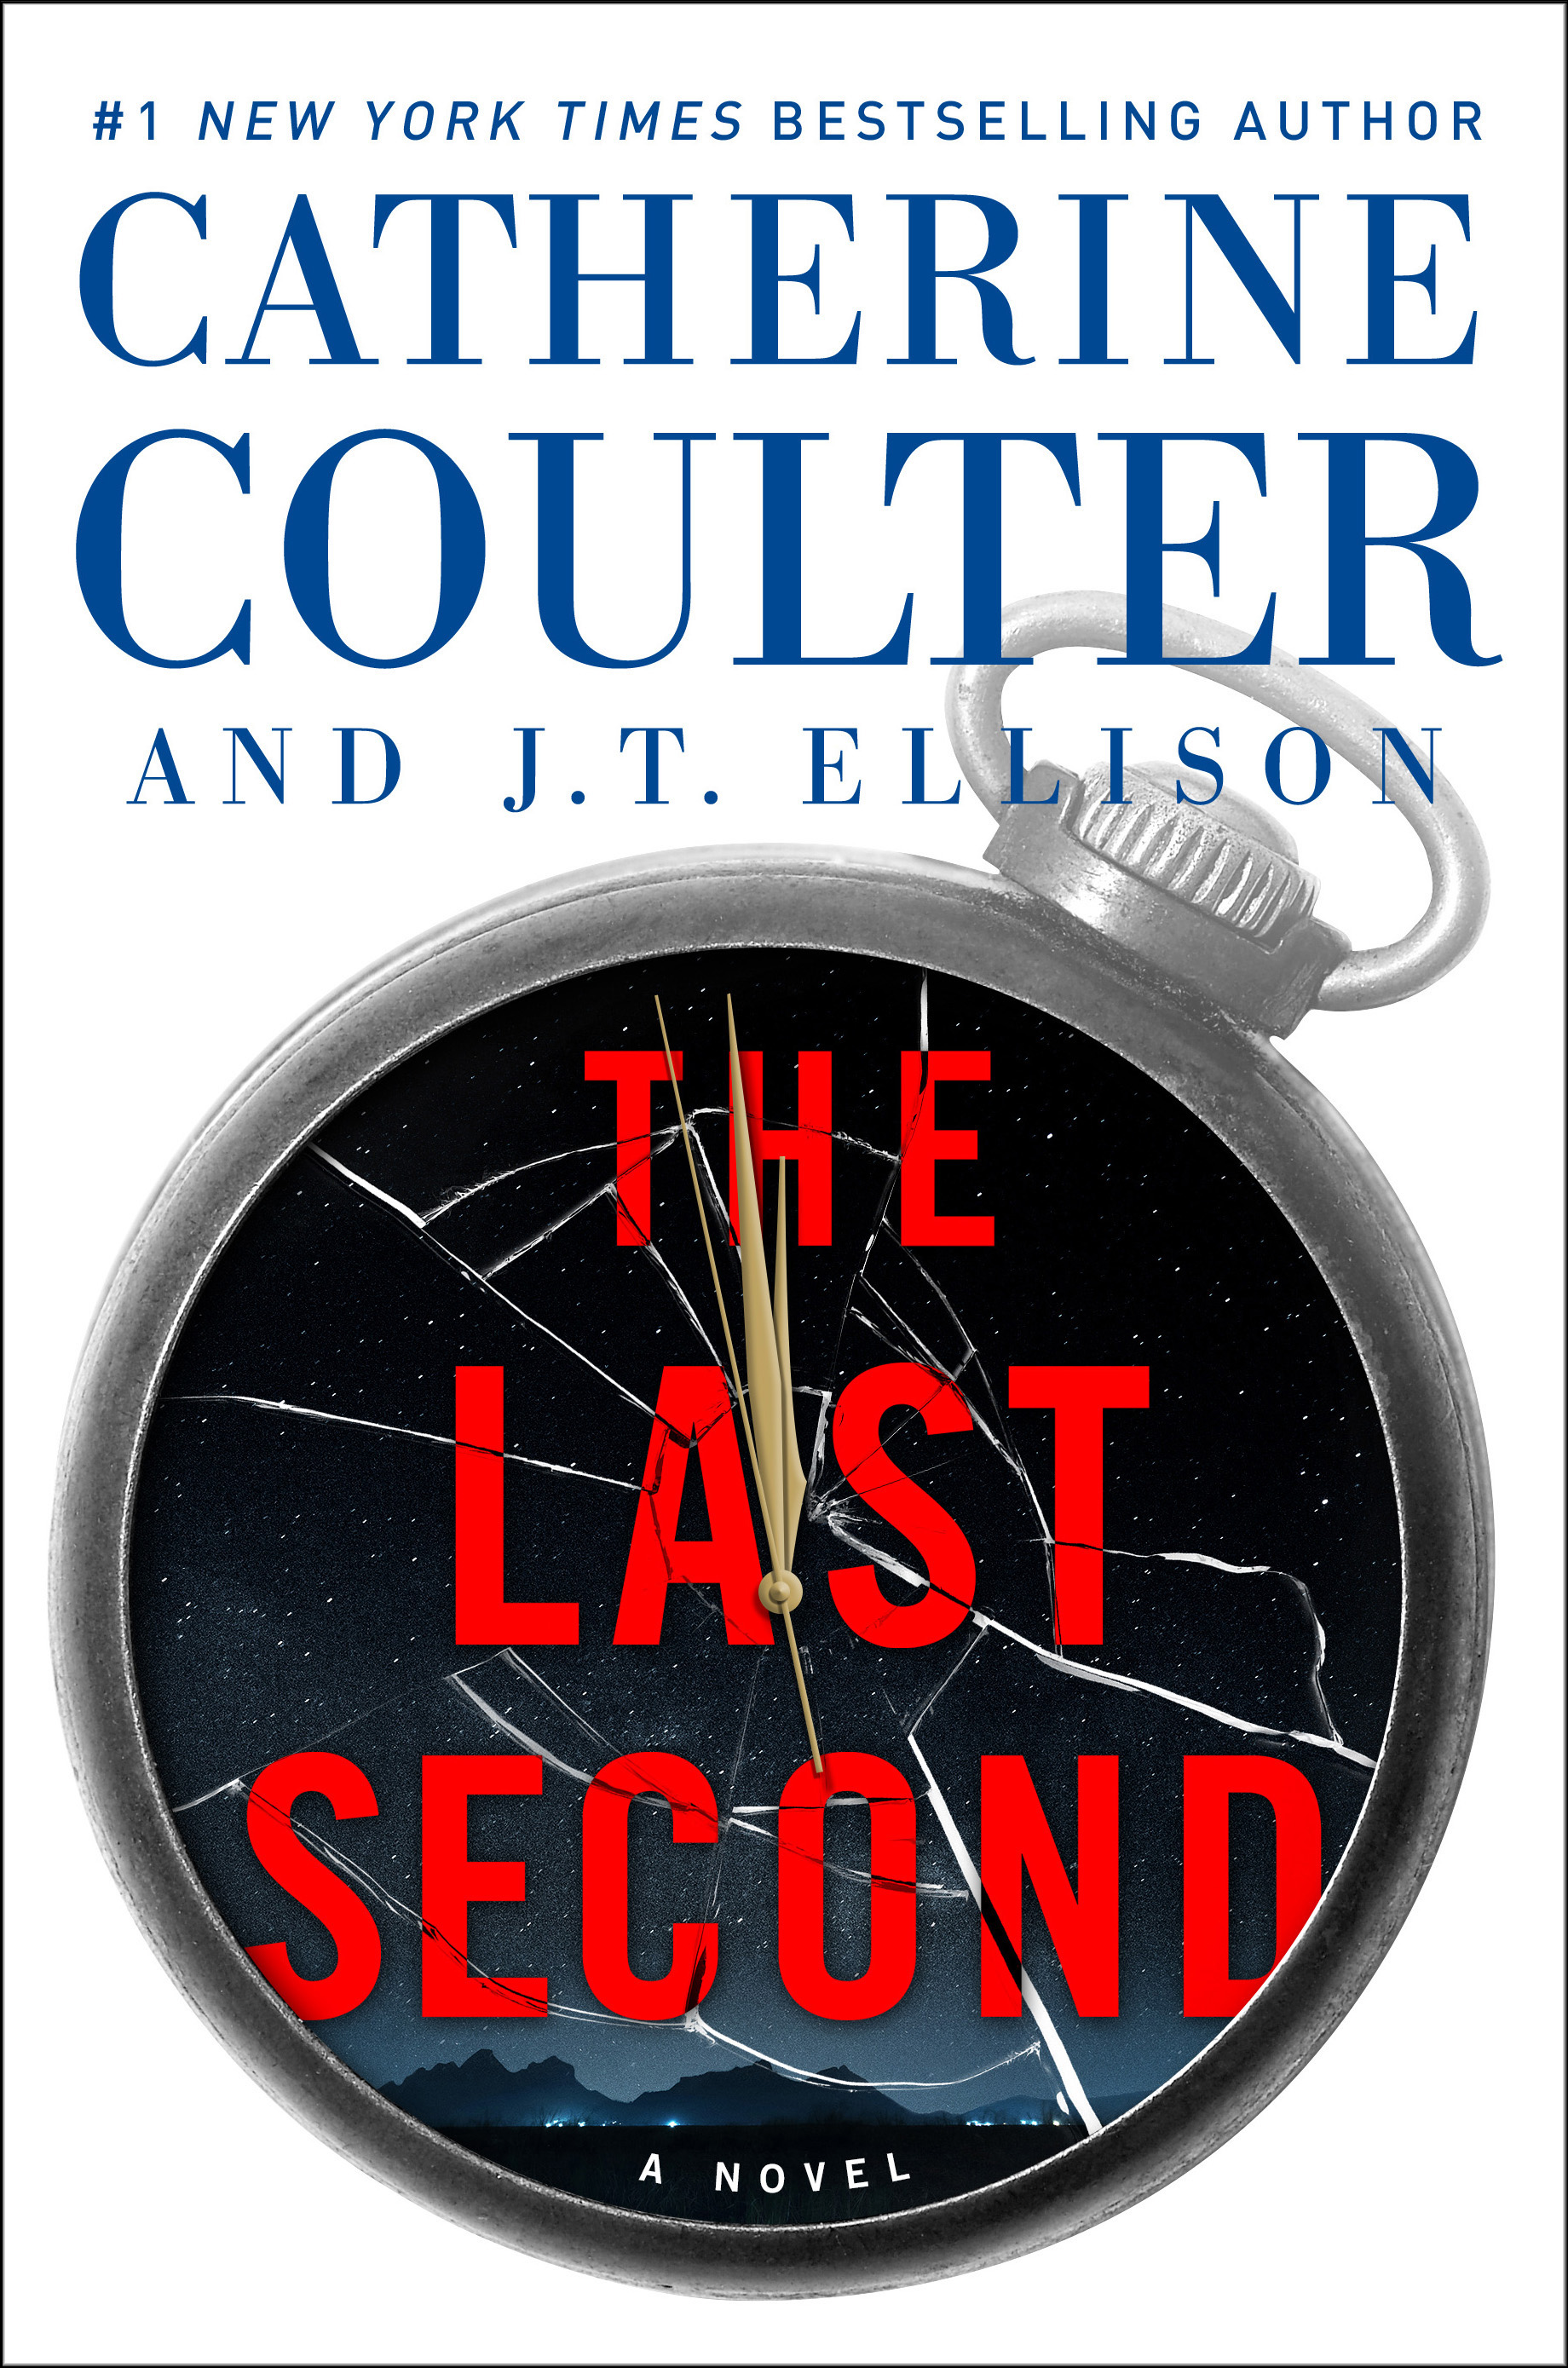 #6 - The Last Second